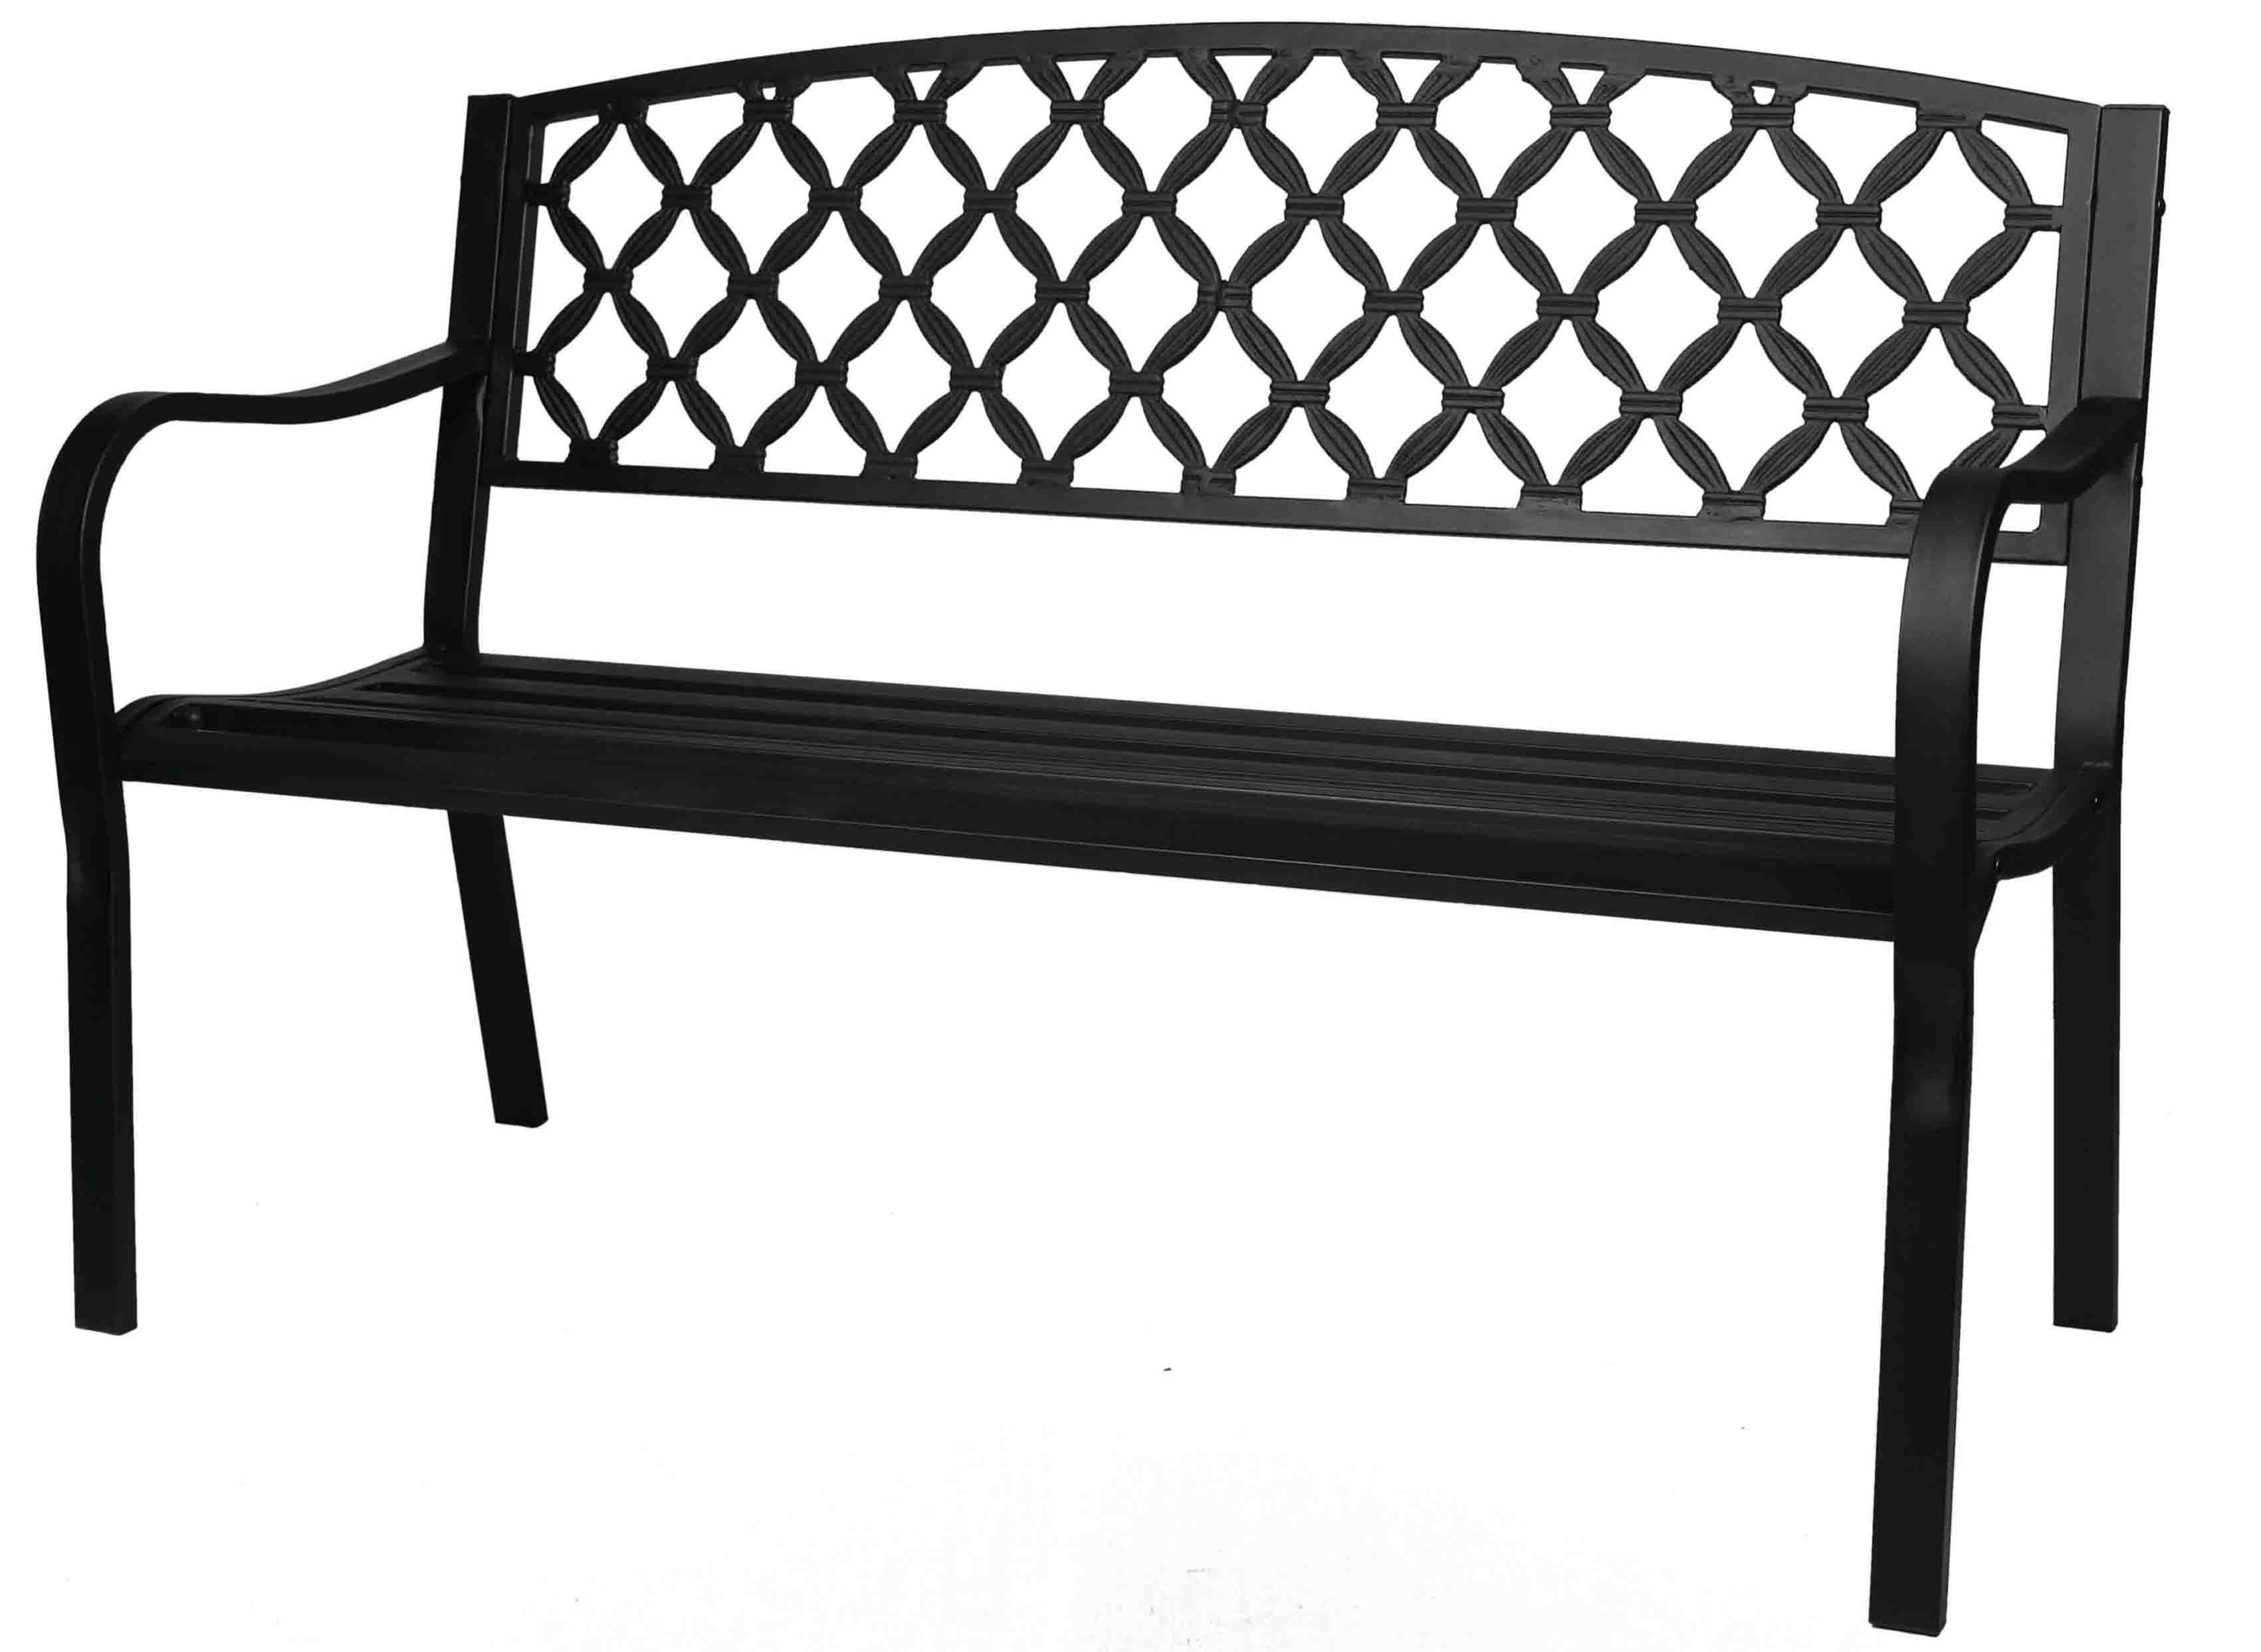 Outdoor 3 Seater Bench Buy Outdoor 3 Seater Bench line at Best